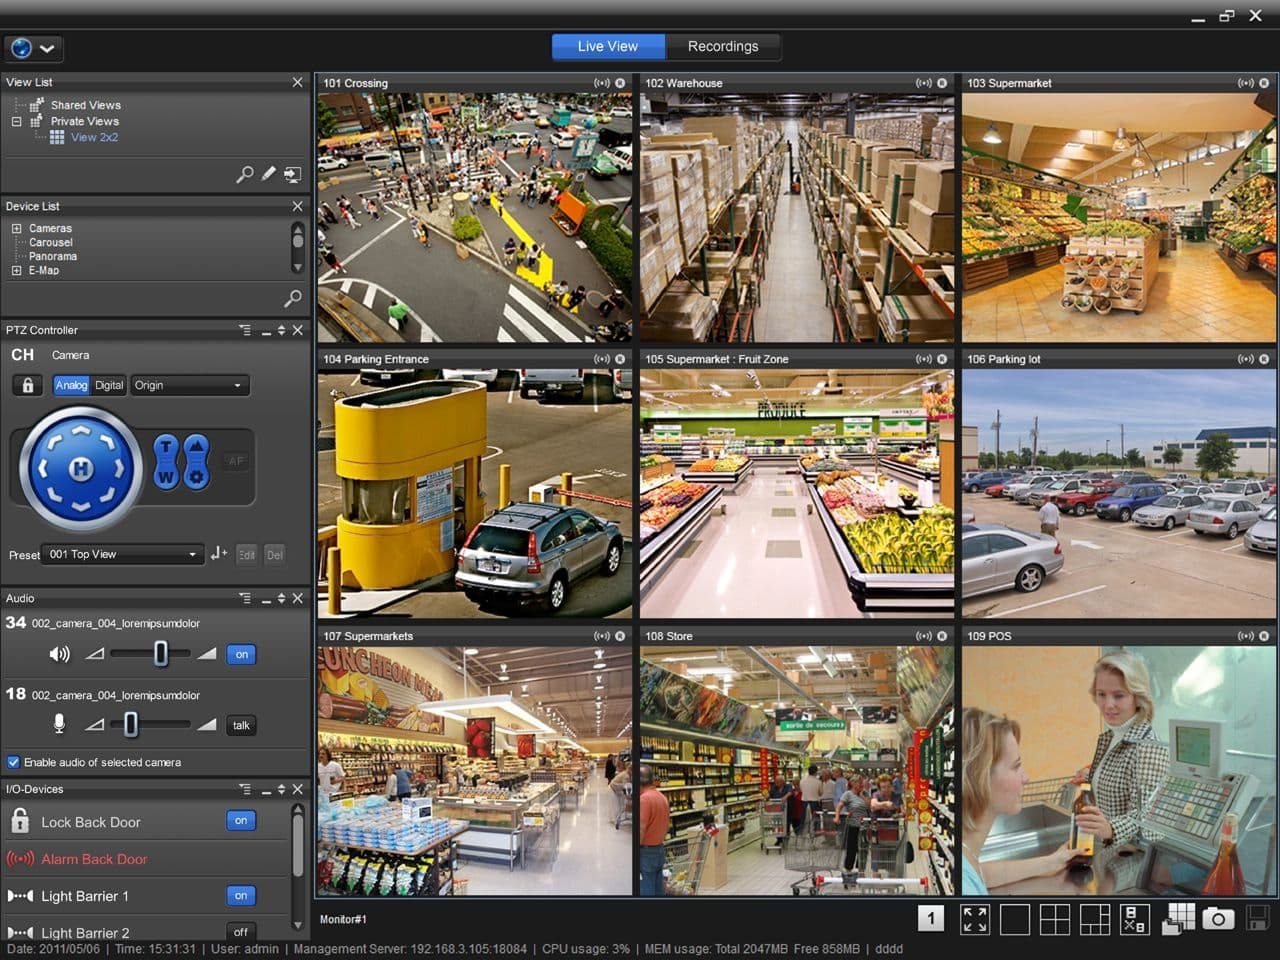 Nuuo Nvr Titan Stand Alone Dvr Mac Viewer Software